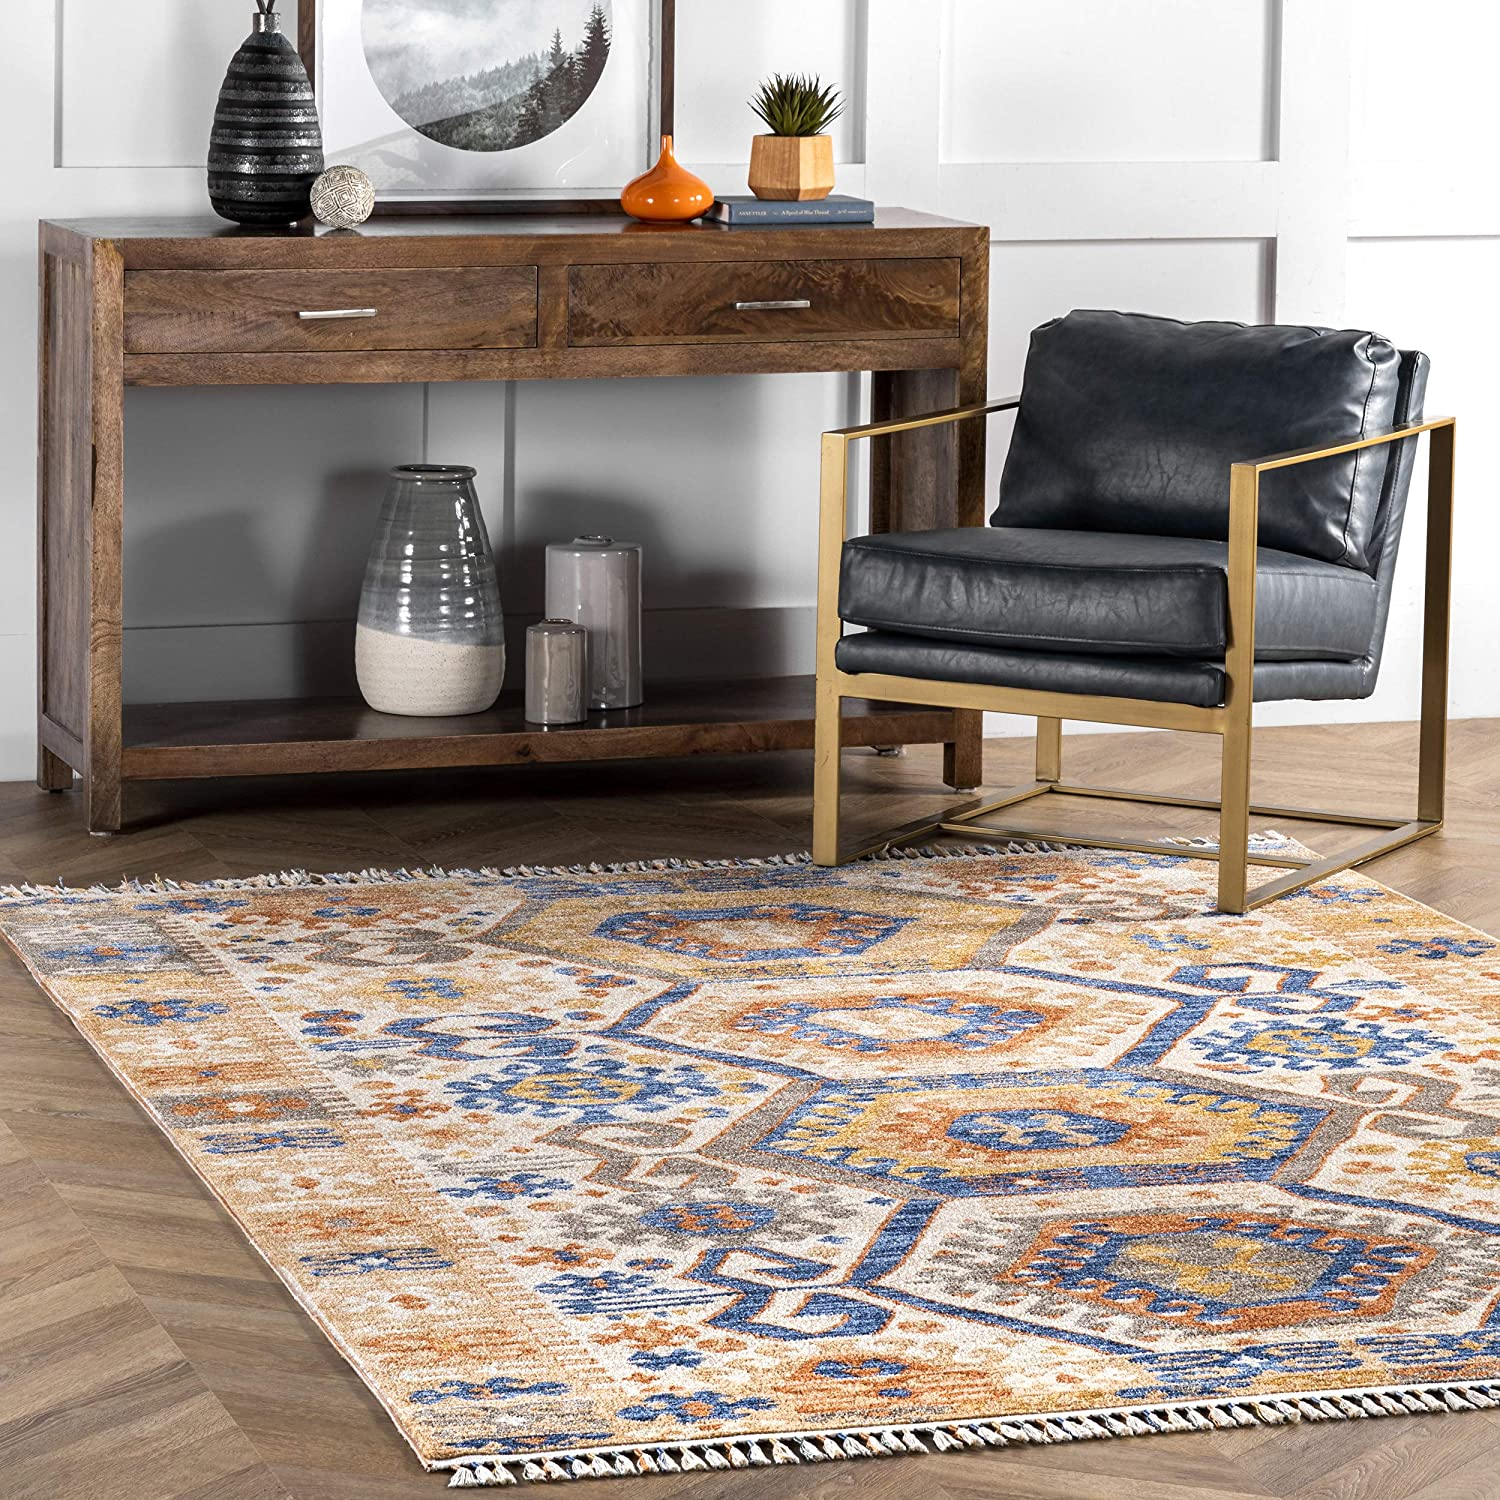 nuLOOM Ripley Global Tasseled Area x Max 85% OFF 10' Rug Multi 8' Now free shipping